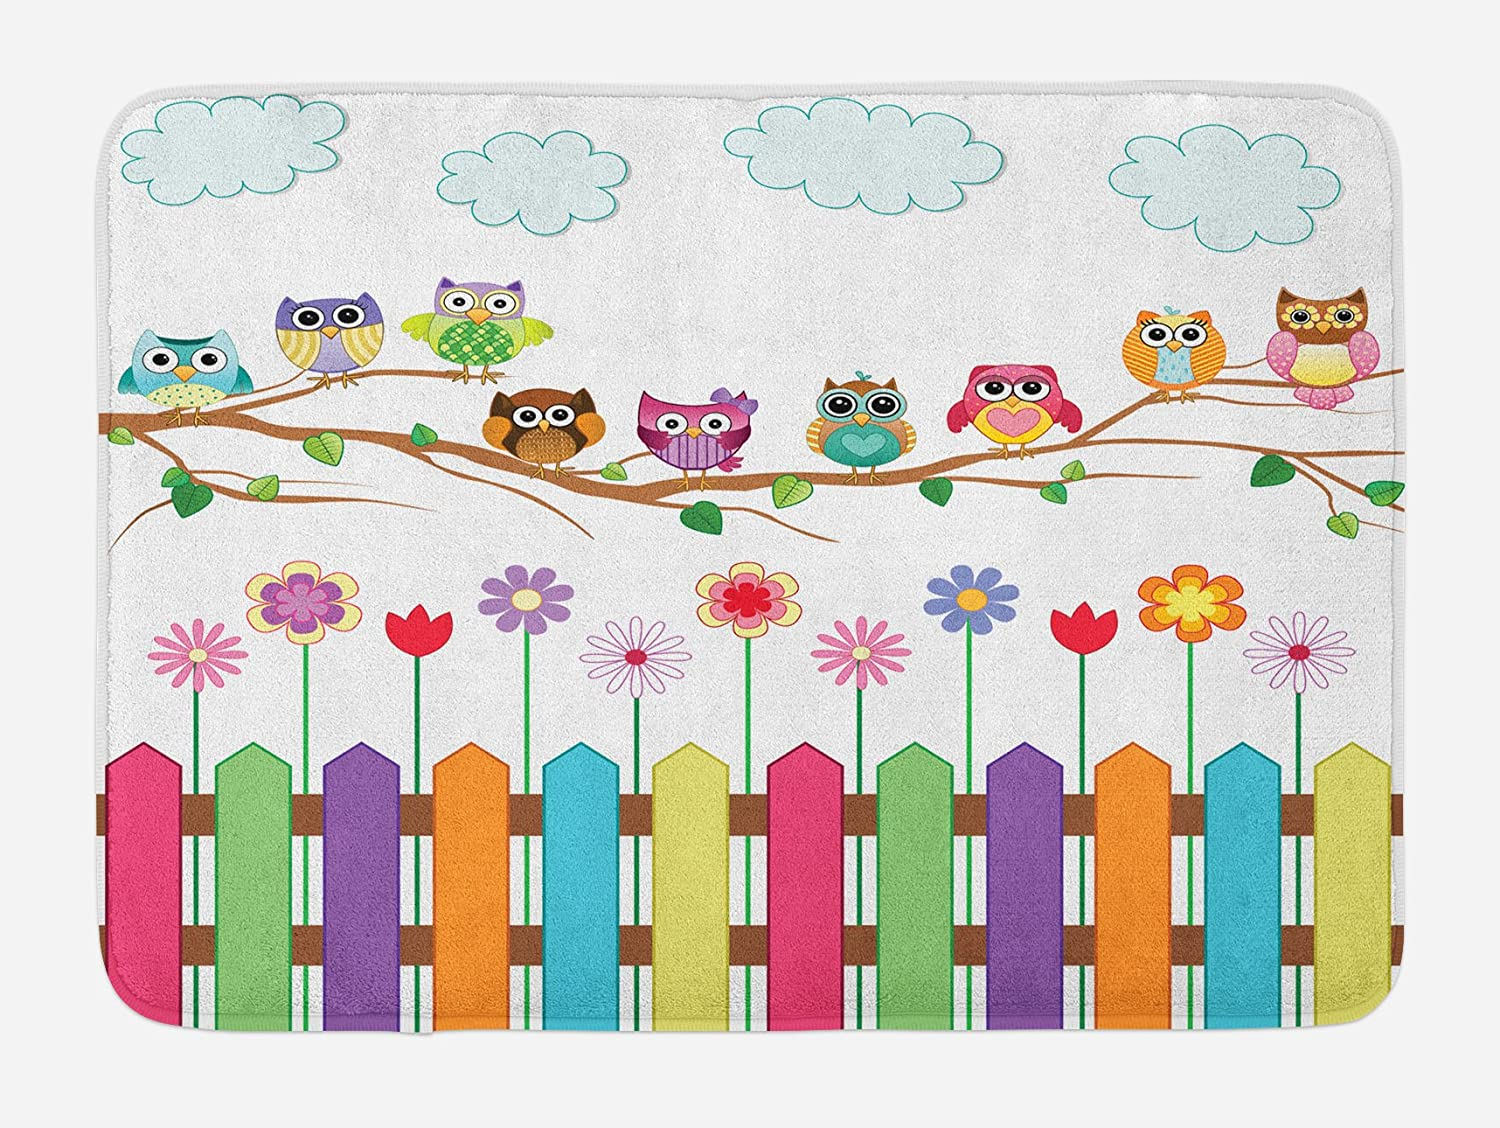 """Ambesonne Owls Bath Mat, Owls on a Branch Sunny Day in Countryside Farmhouse Fences Wildflowers Holidays Art, Plush Bathroom Decor Mat with Non Slip Backing, 29.5"""" X 17.5"""", White Pink"""